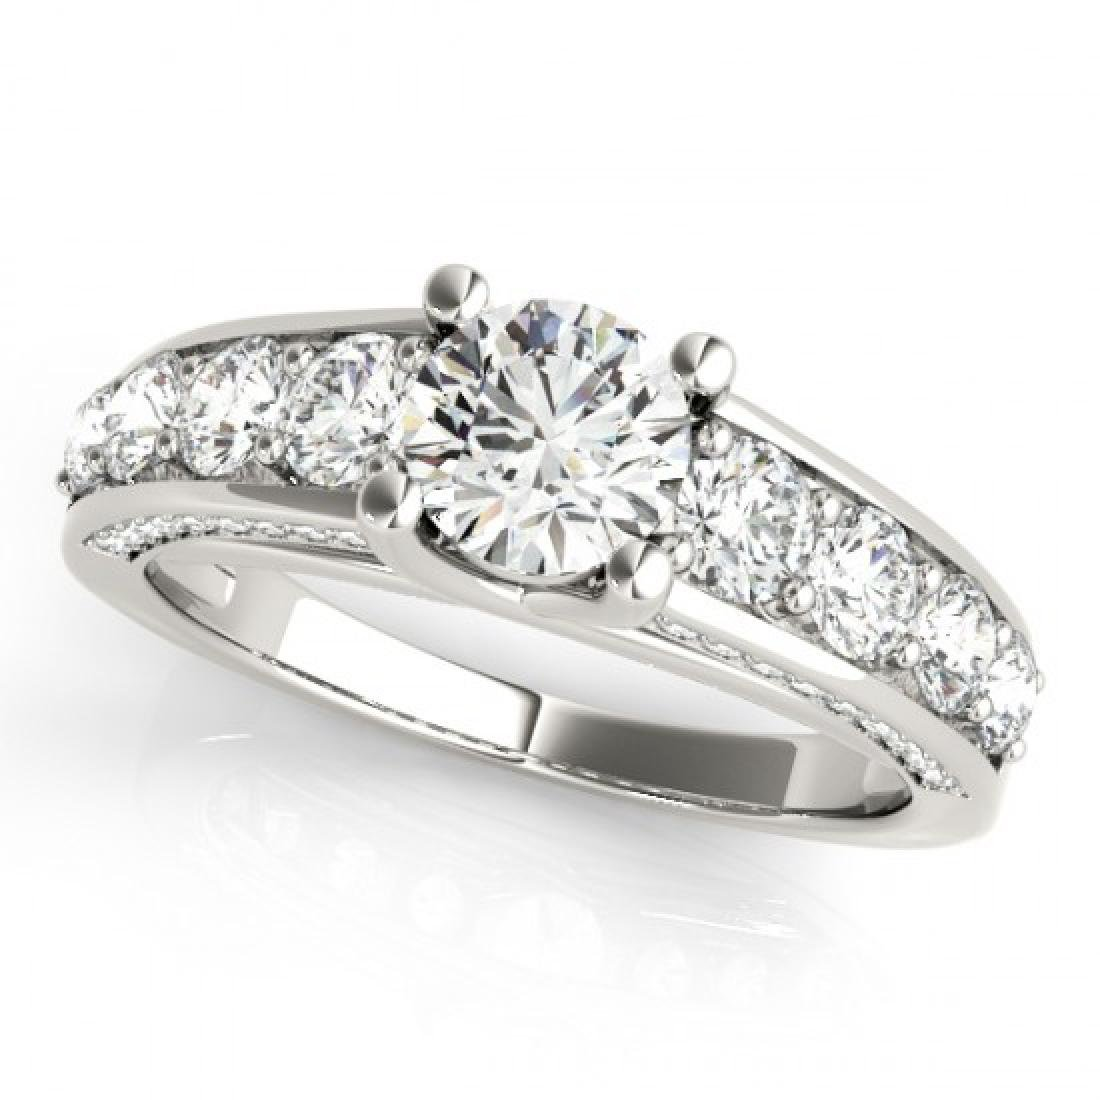 3.05 CTW Certified VS/SI Diamond Solitaire Ring 14K